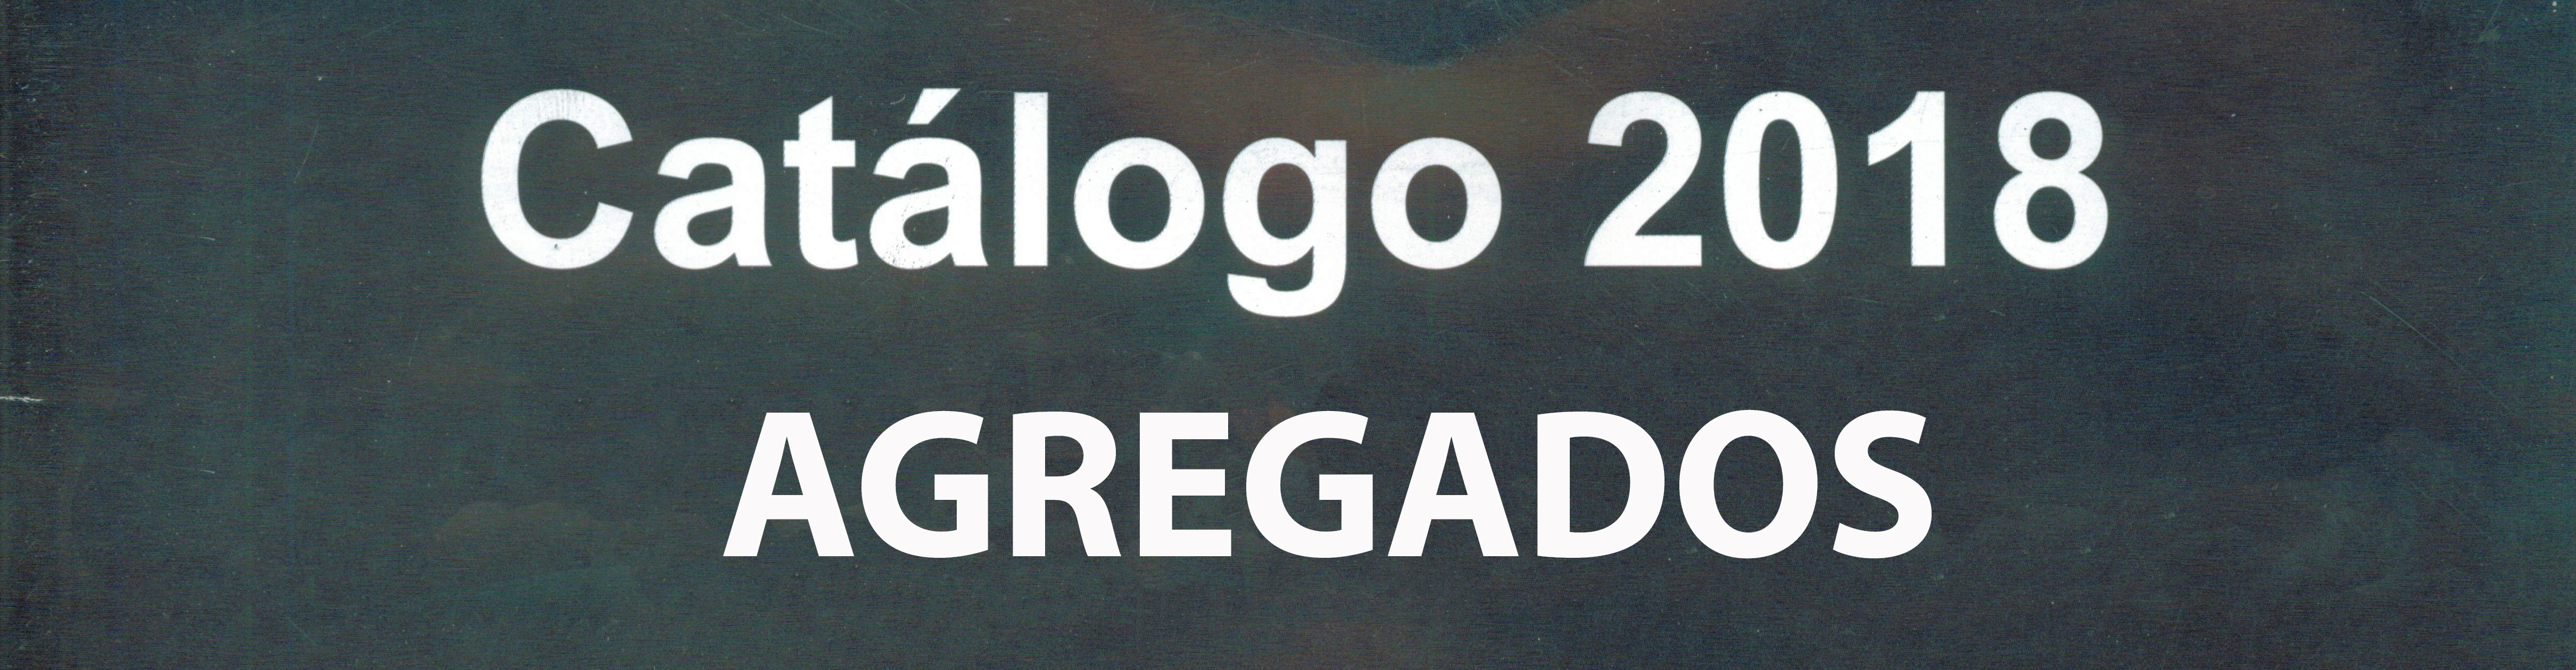 AGREGADOS CATALOGO 2018 (ENERO 2019) (2)